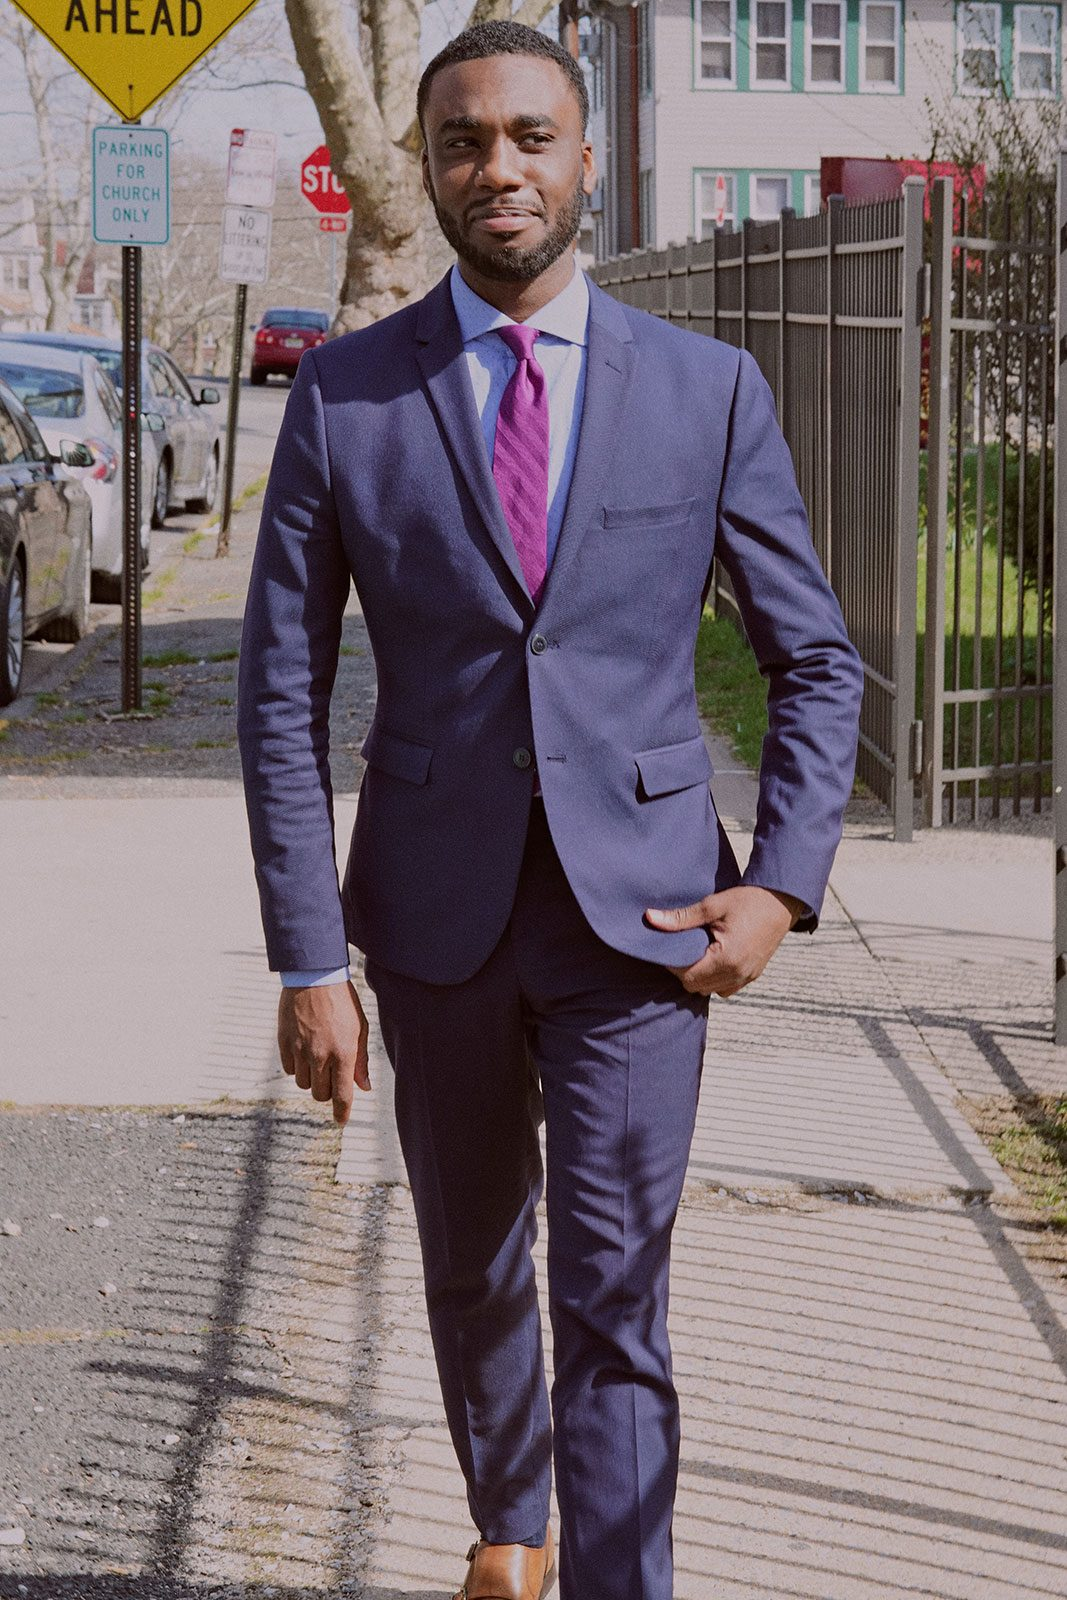 18. Professional man in suit walking outside and smiling